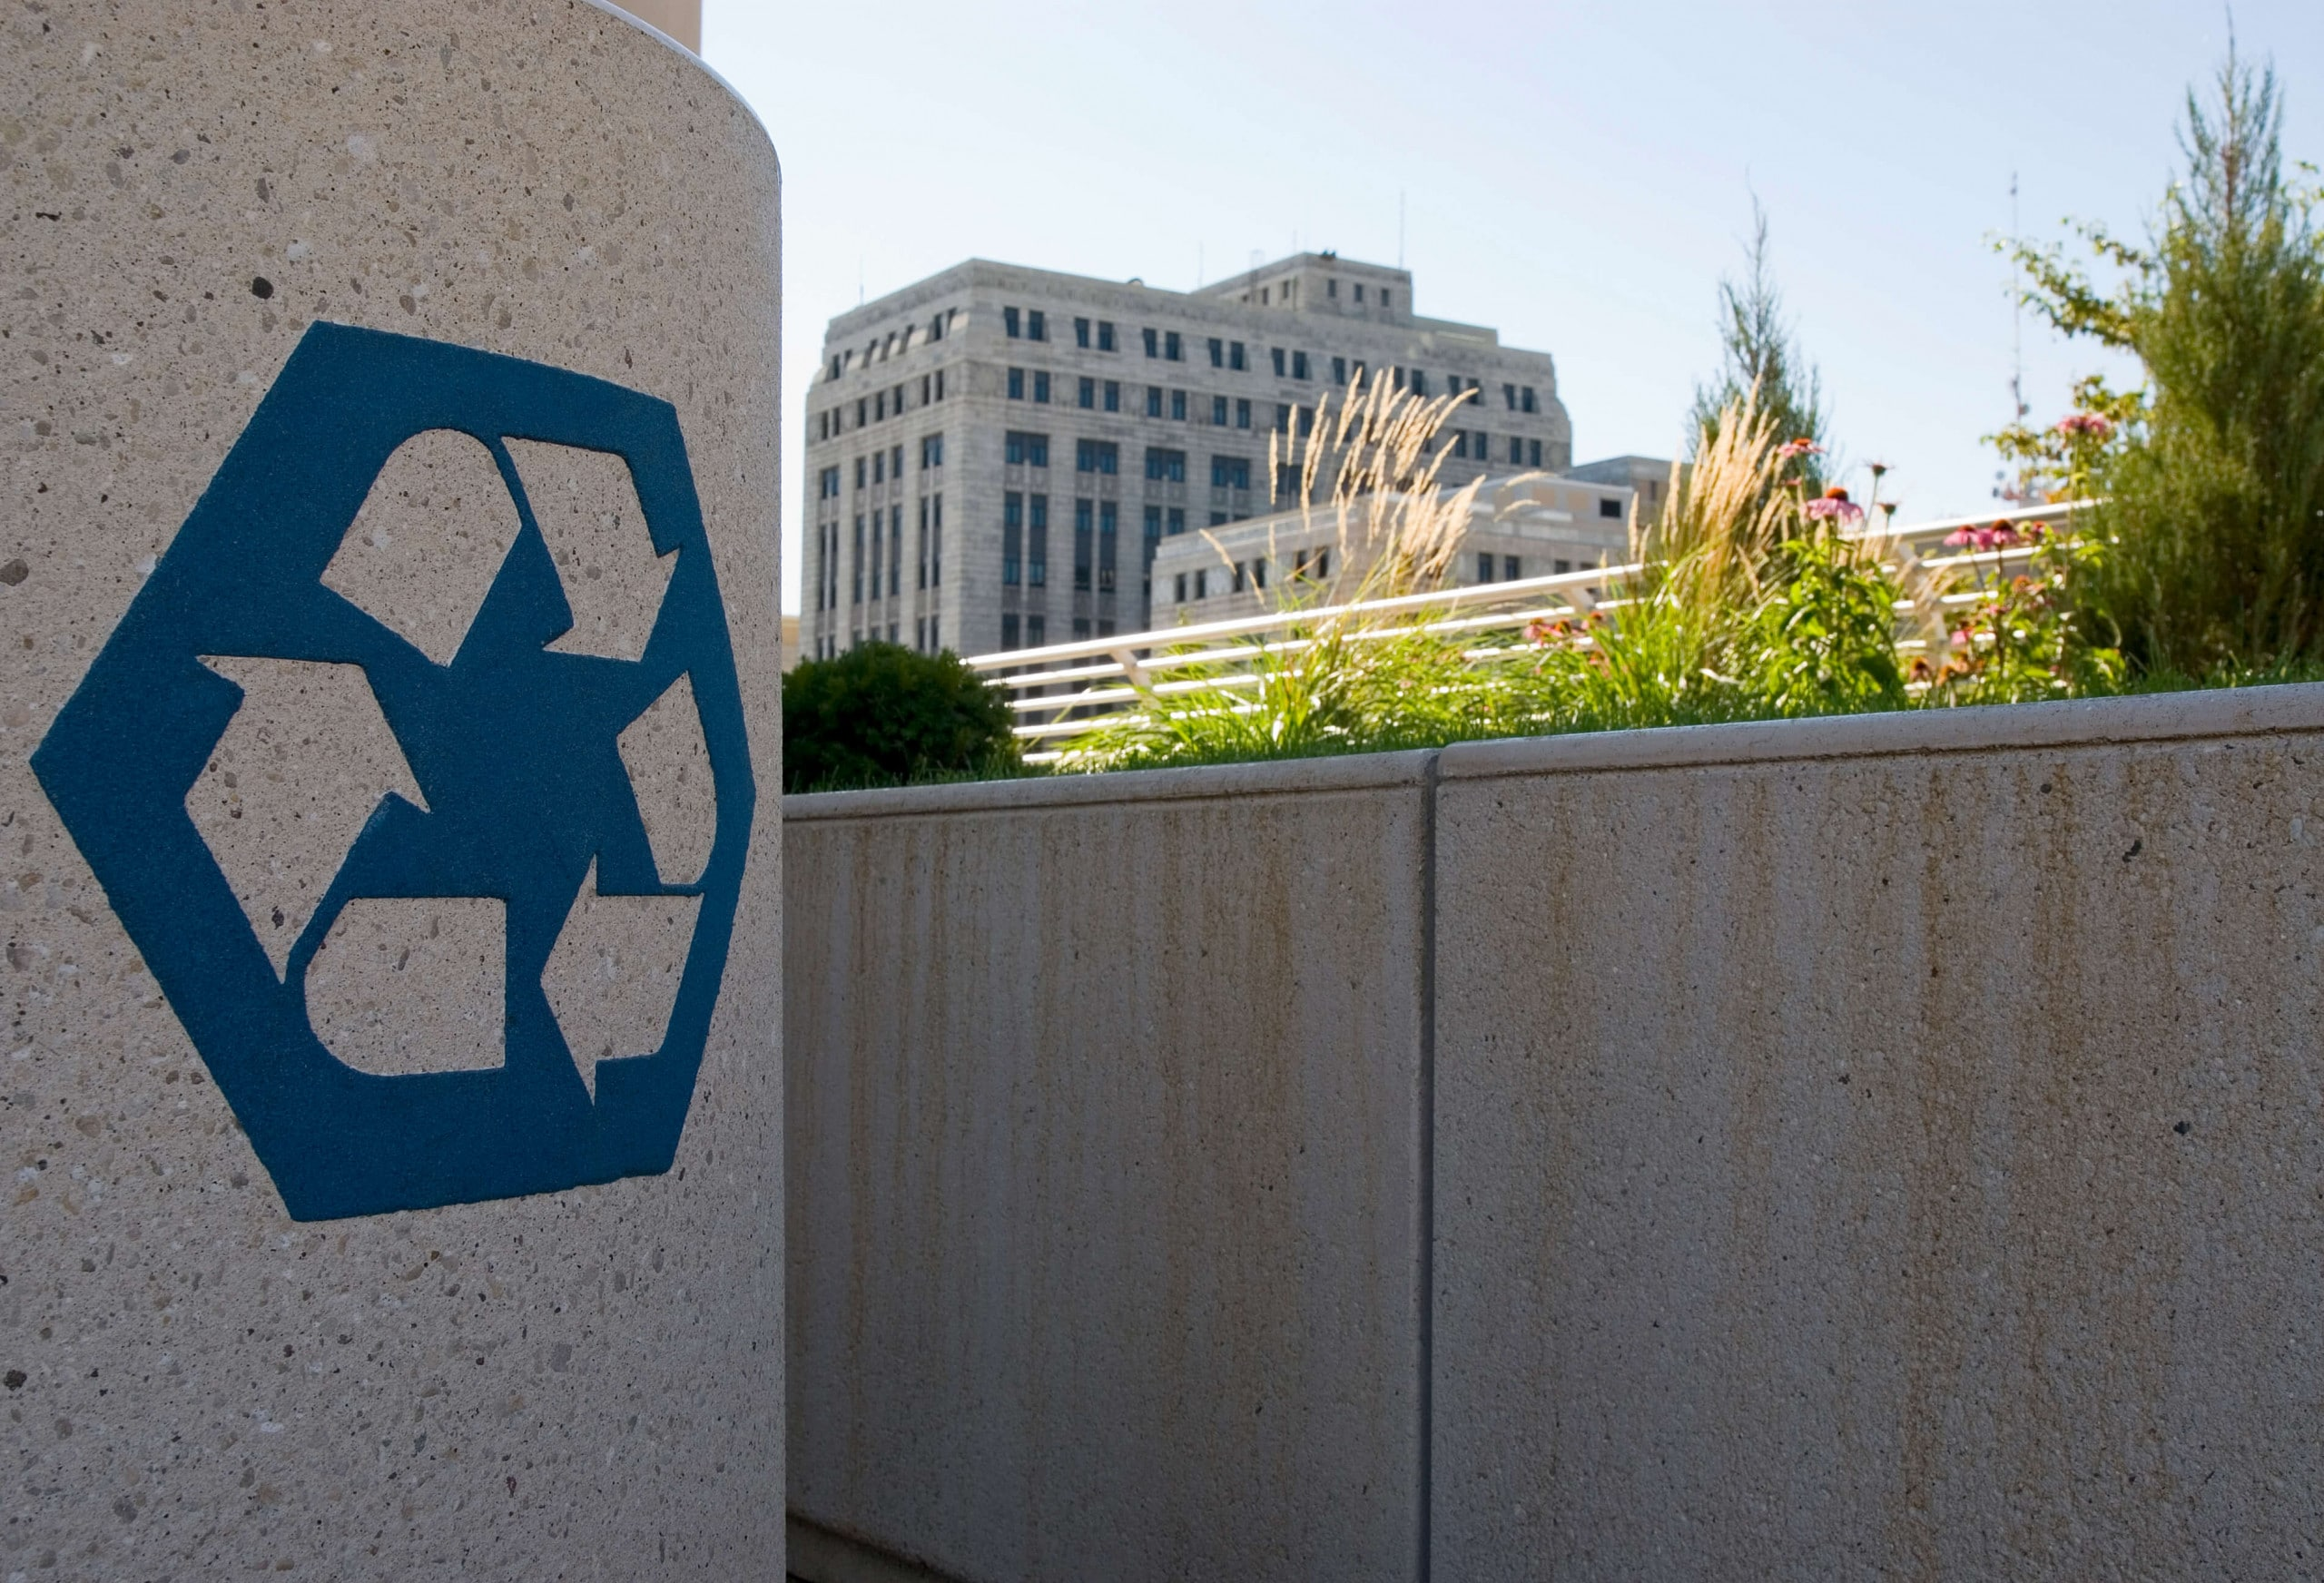 Recycling receptacle, Monona Terrace rooftop